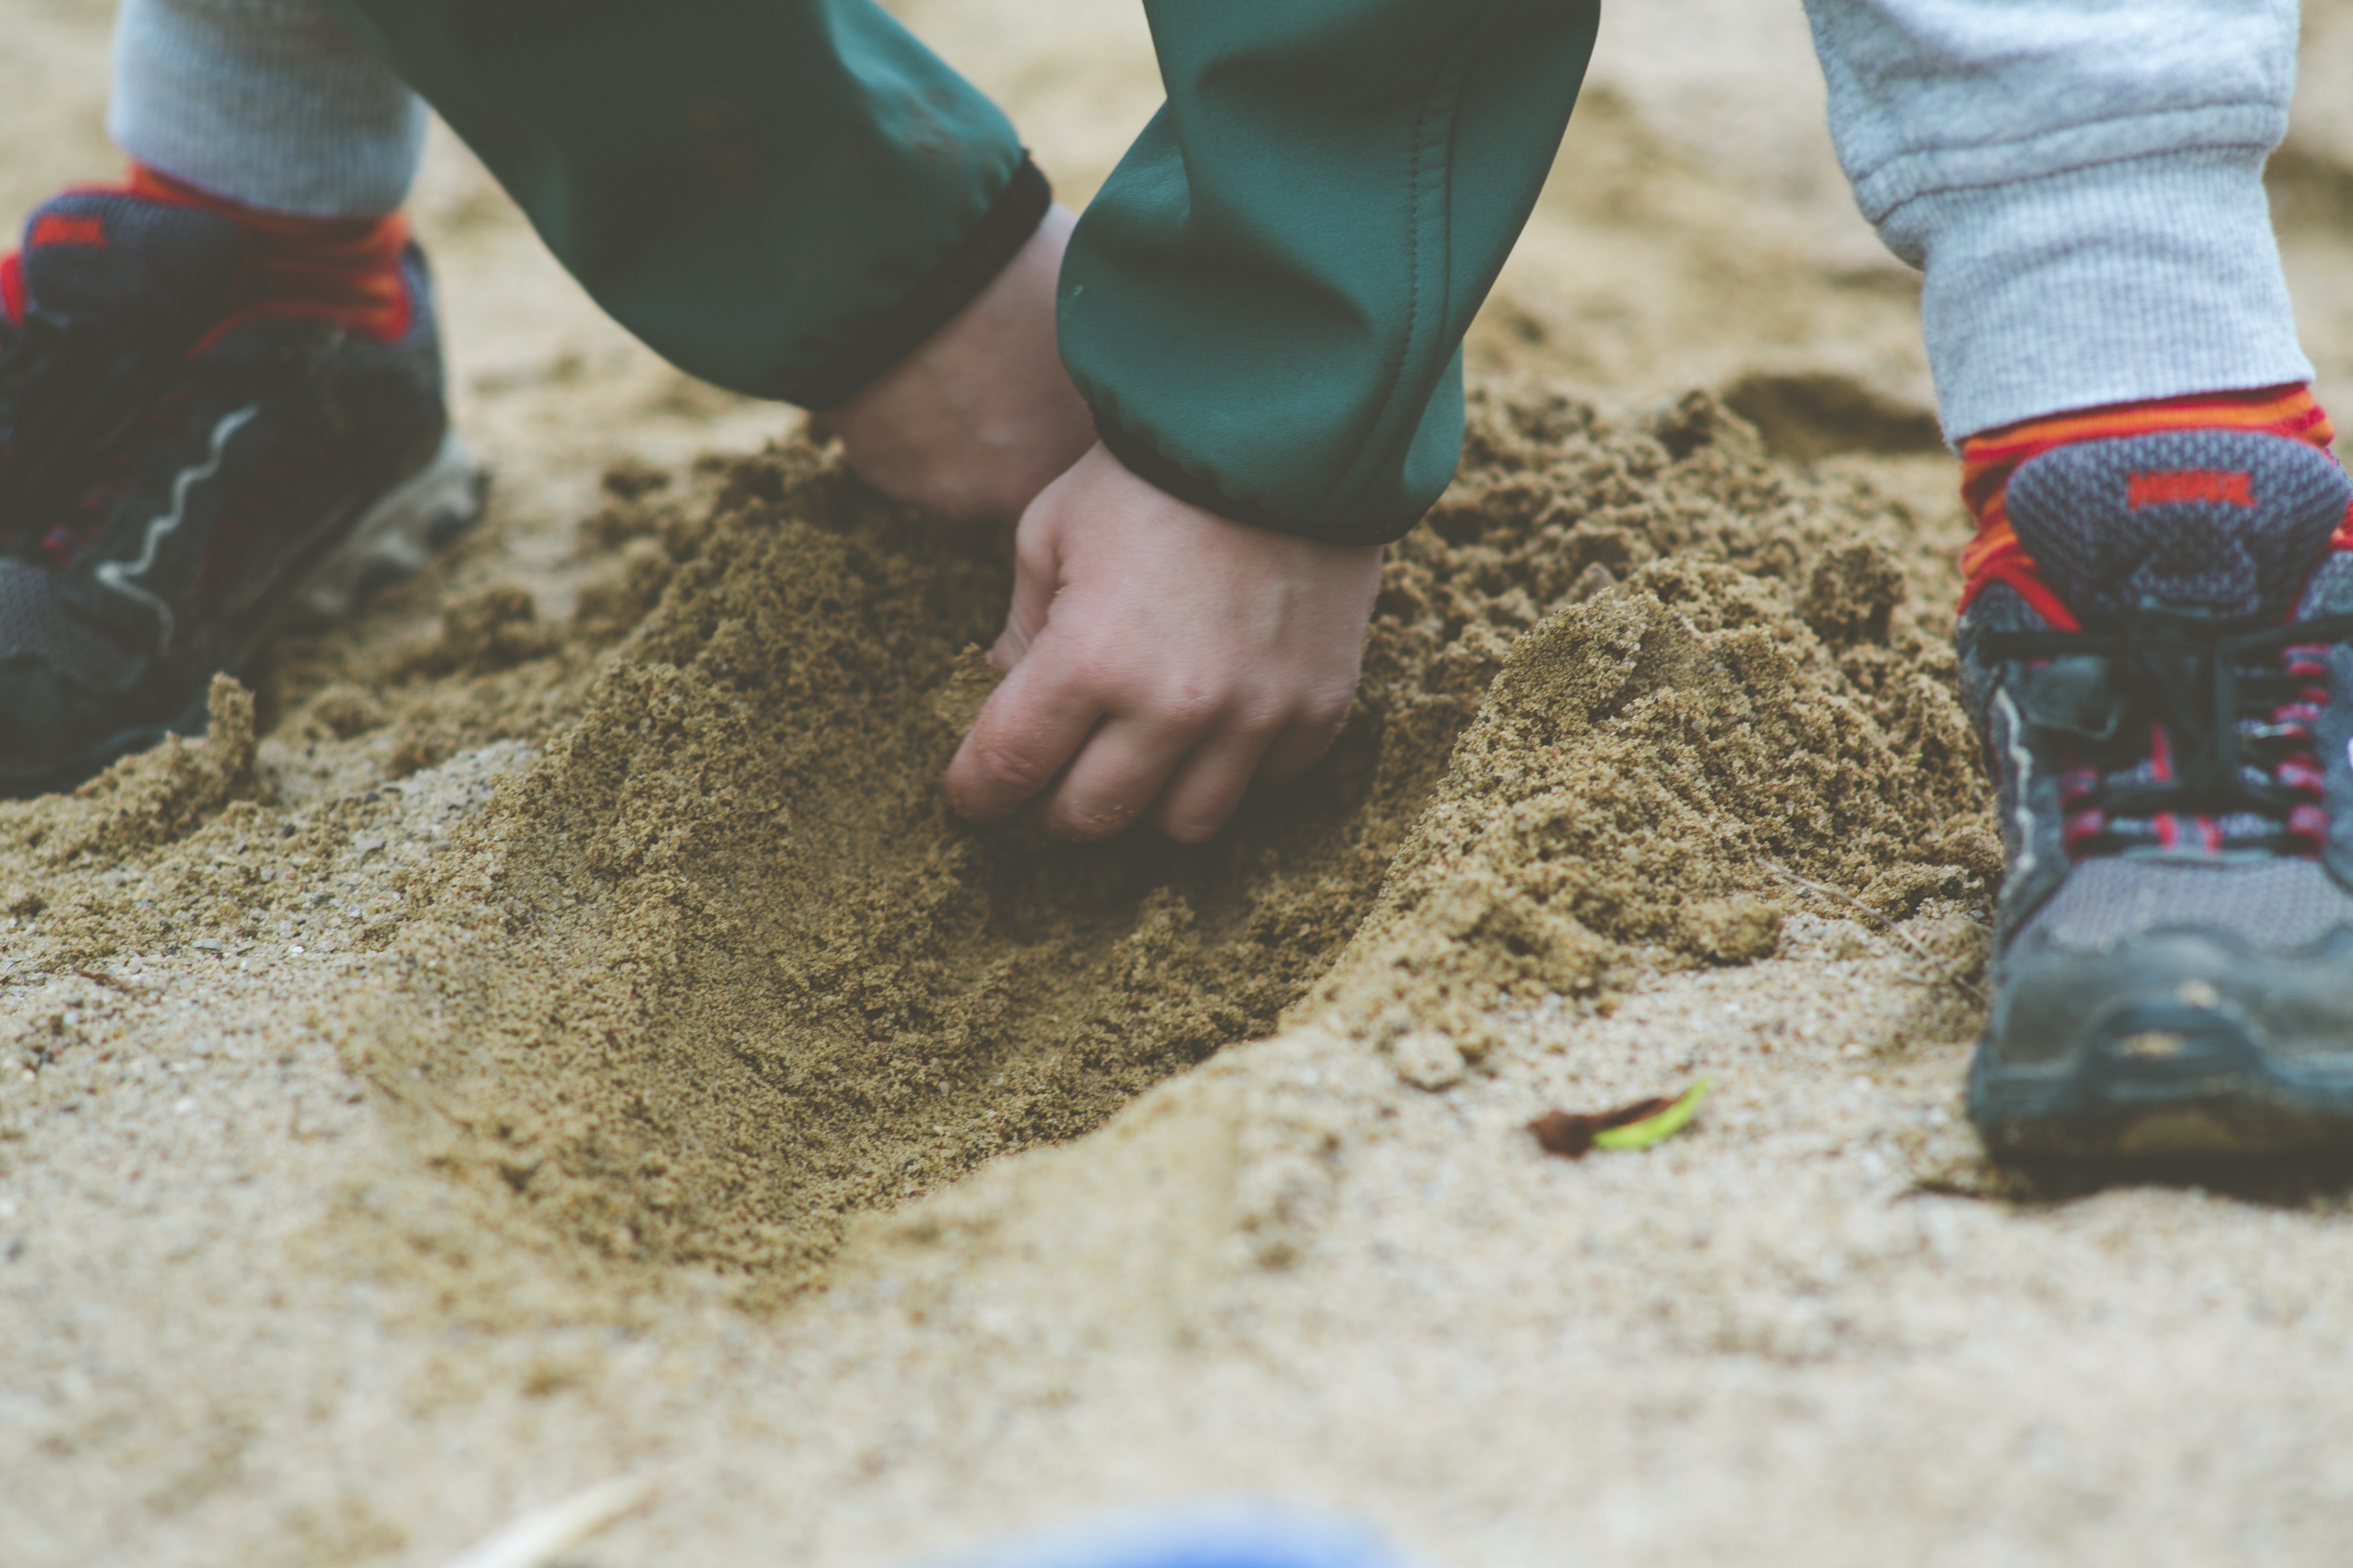 A child digs through sand.